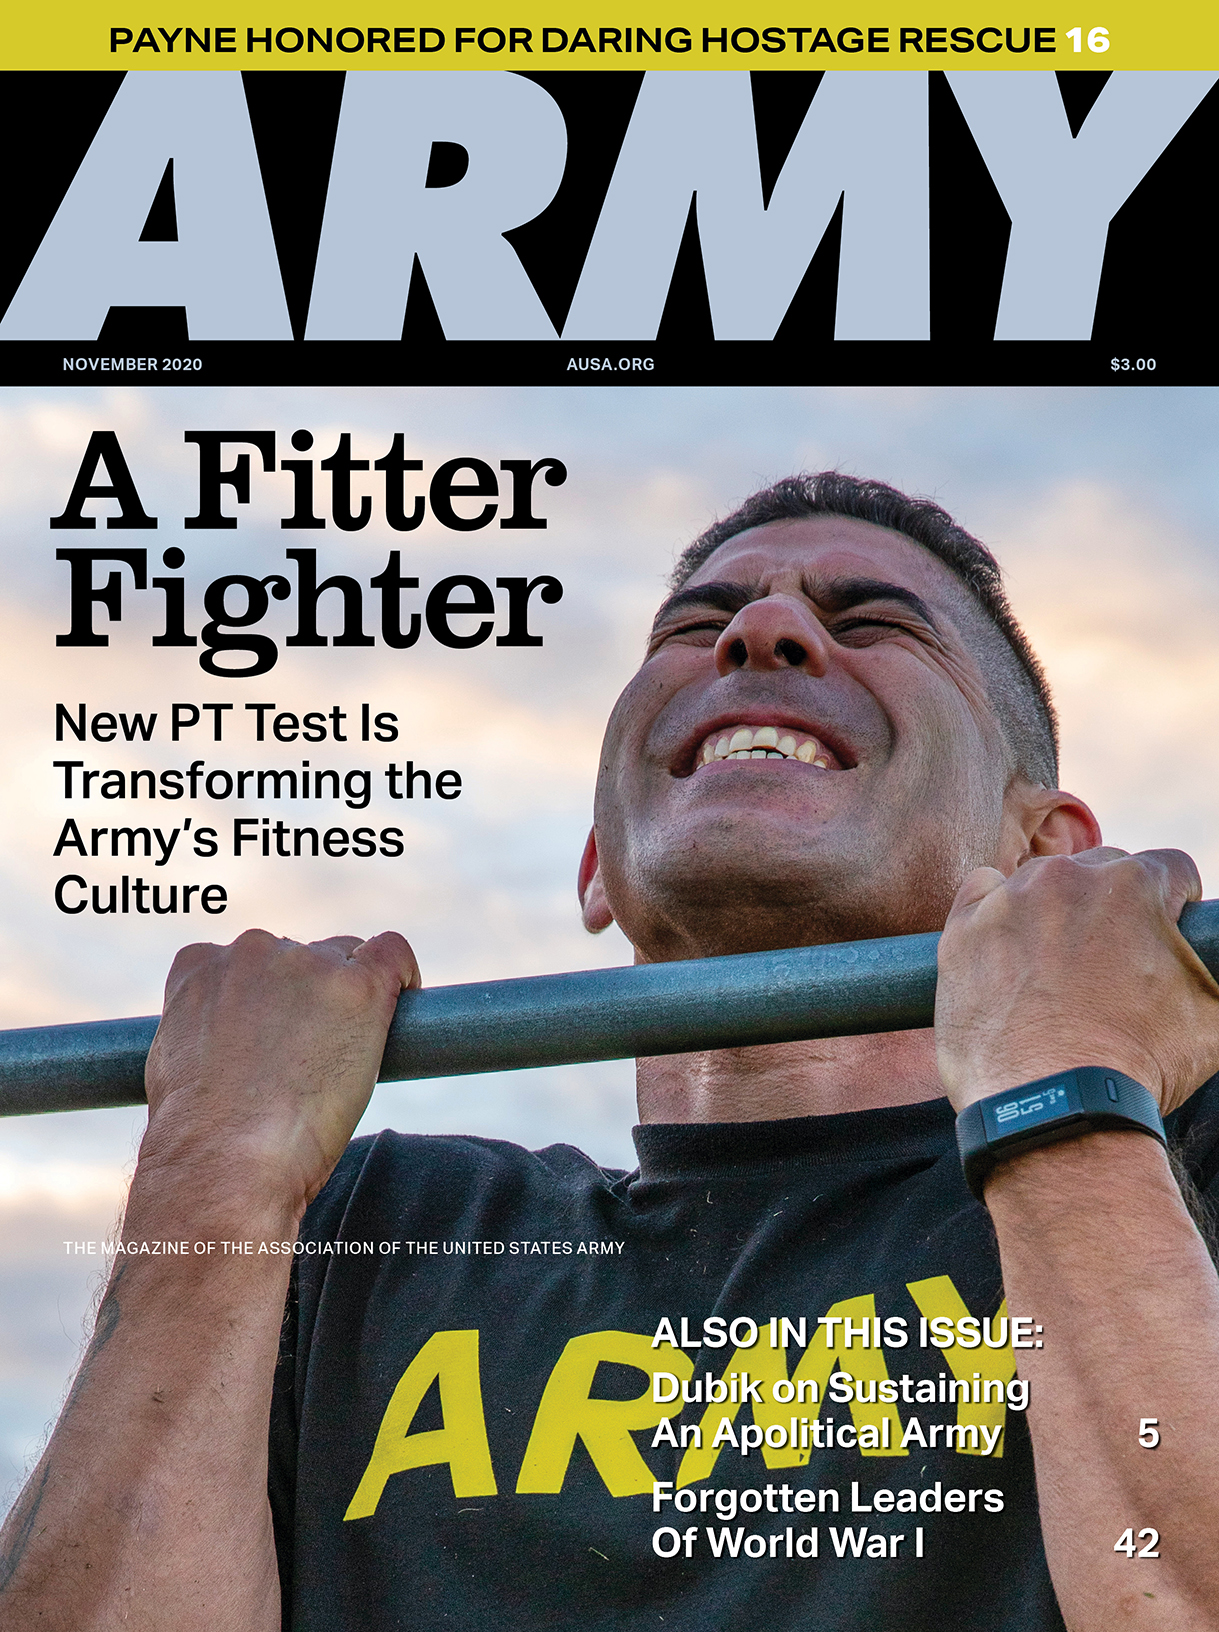 ARMY magazine Vol. 70, No. 11, November 2020